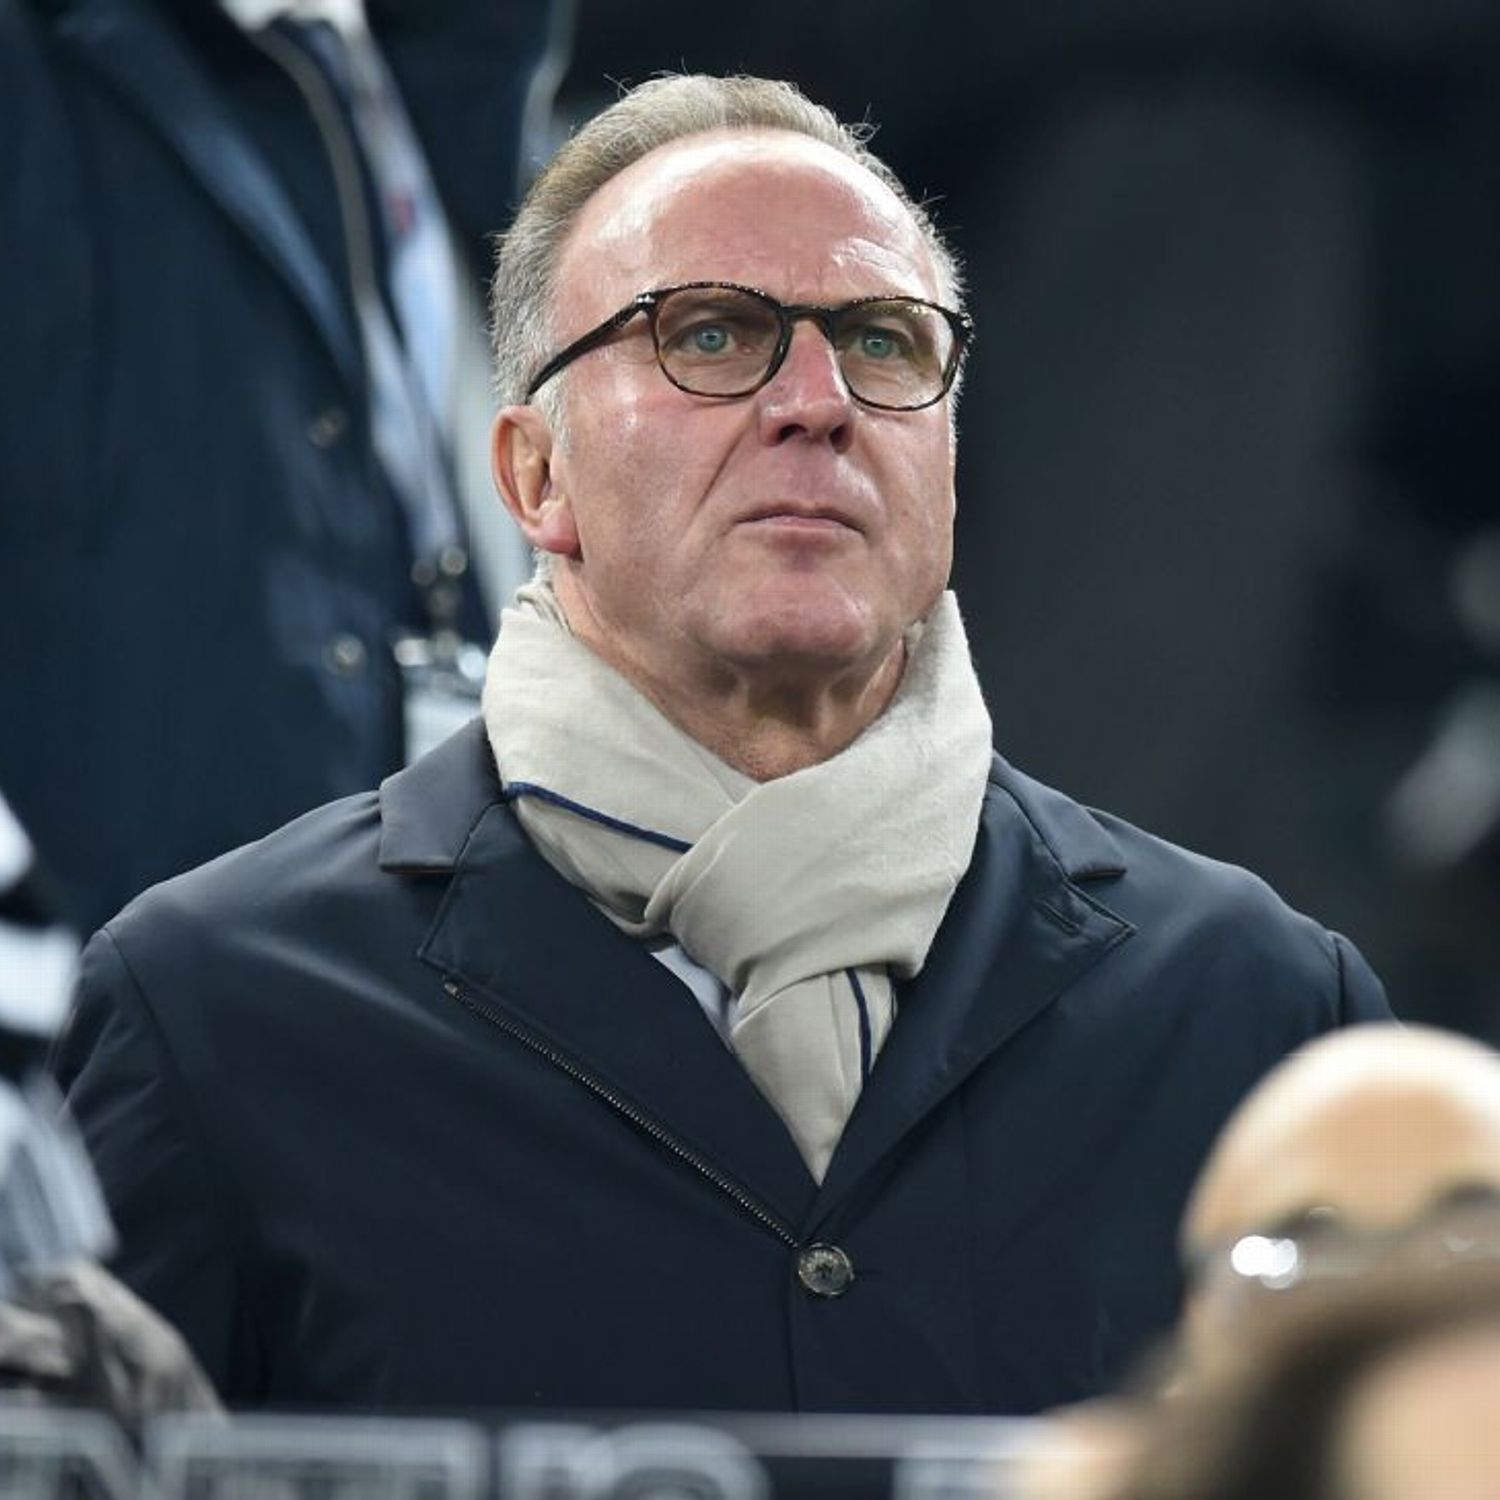 Karl-Heinz Rummenigge: UCL Revenue Changes Defend European